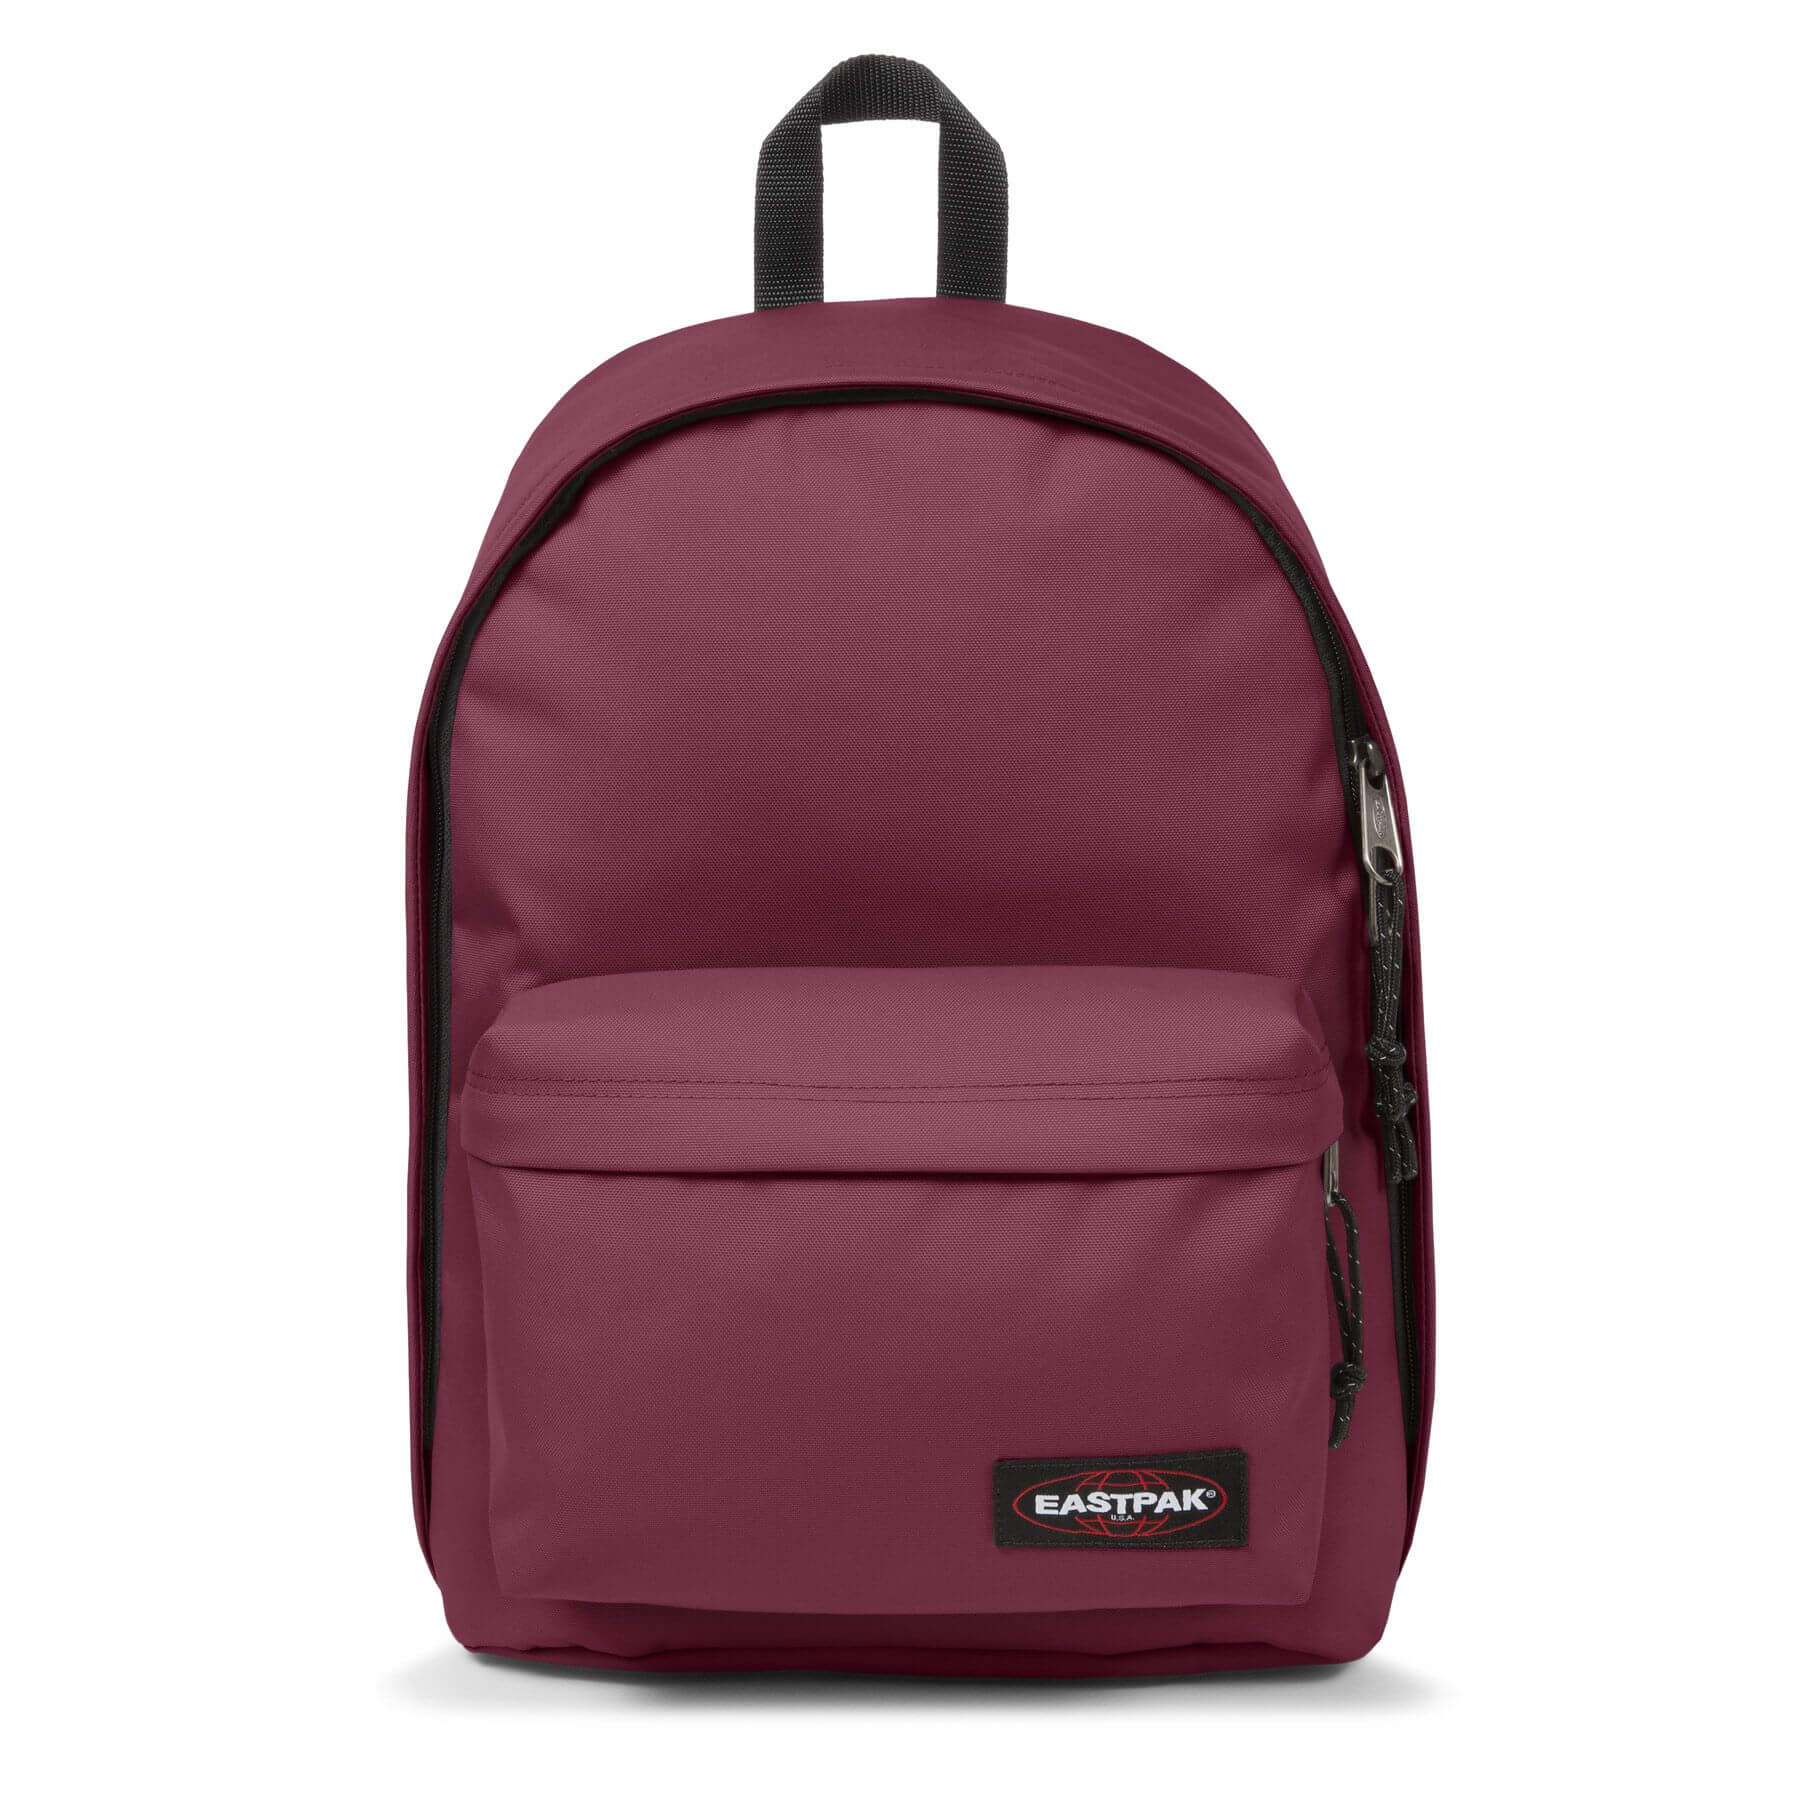 Eastpak Out Of Office Crimson Burgundy